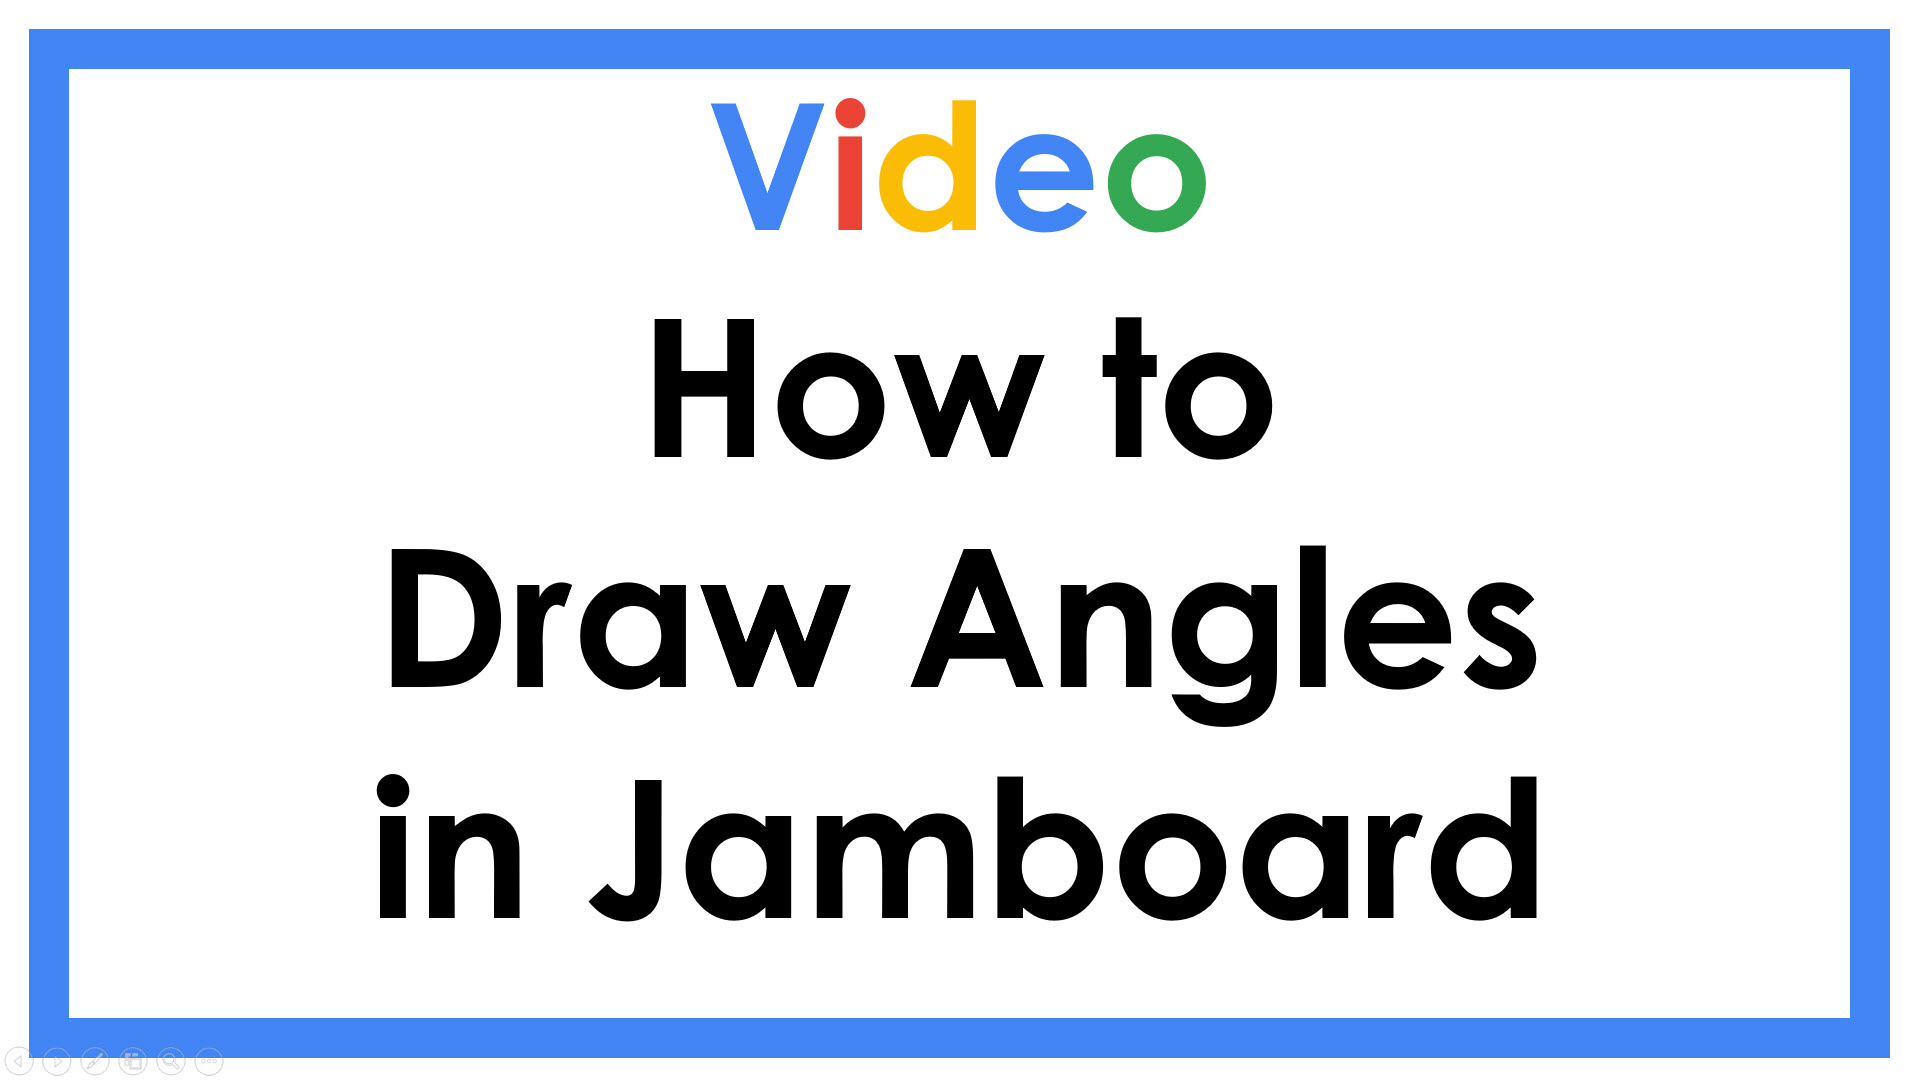 How to Draw Angles in Jamboard